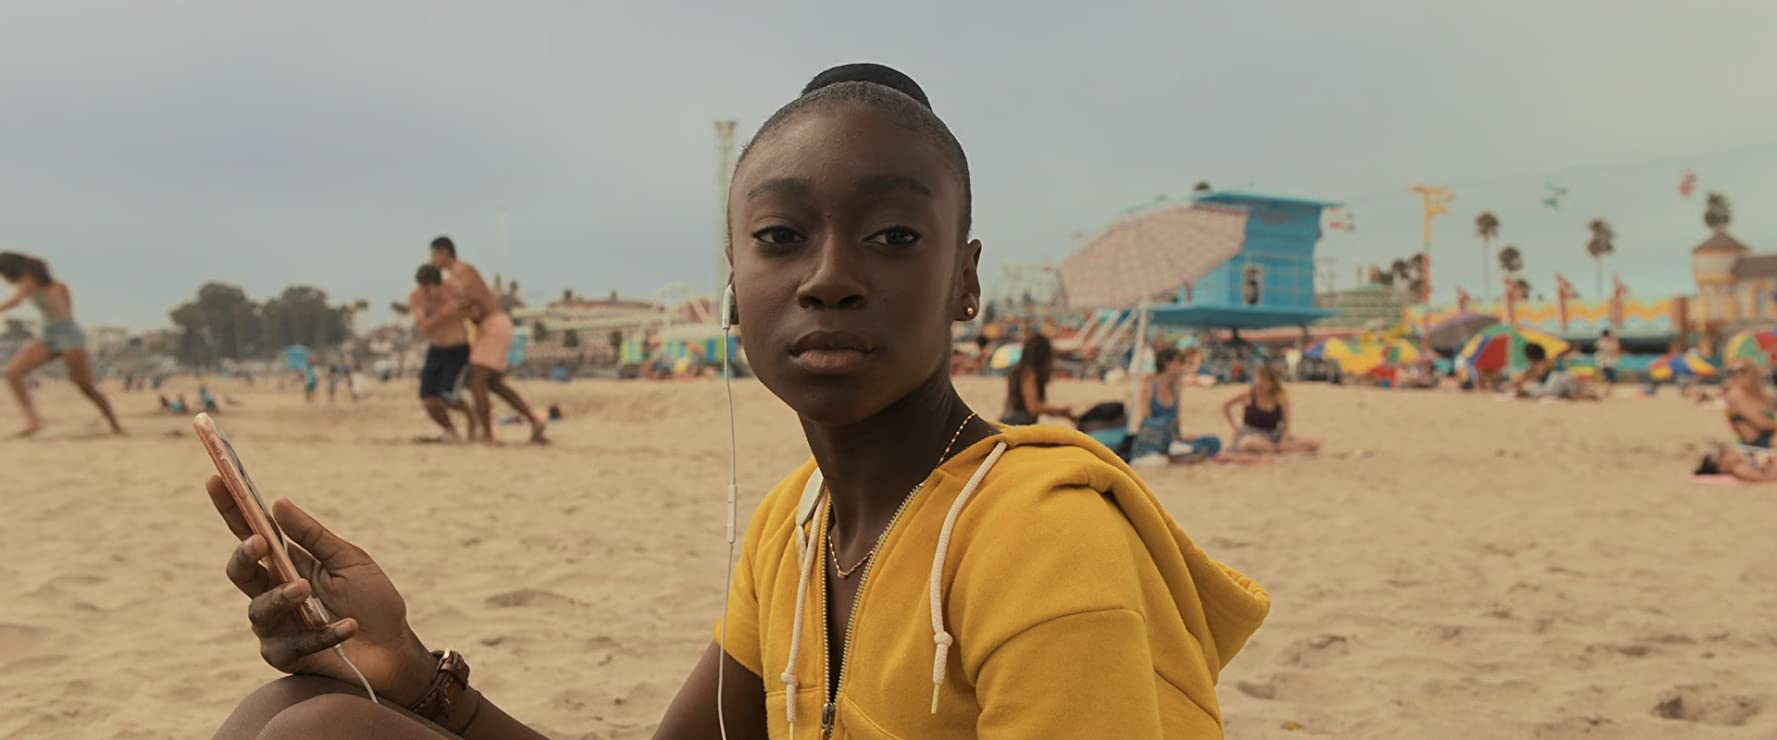 Shahadi Wright Joseph as Zora Wilson